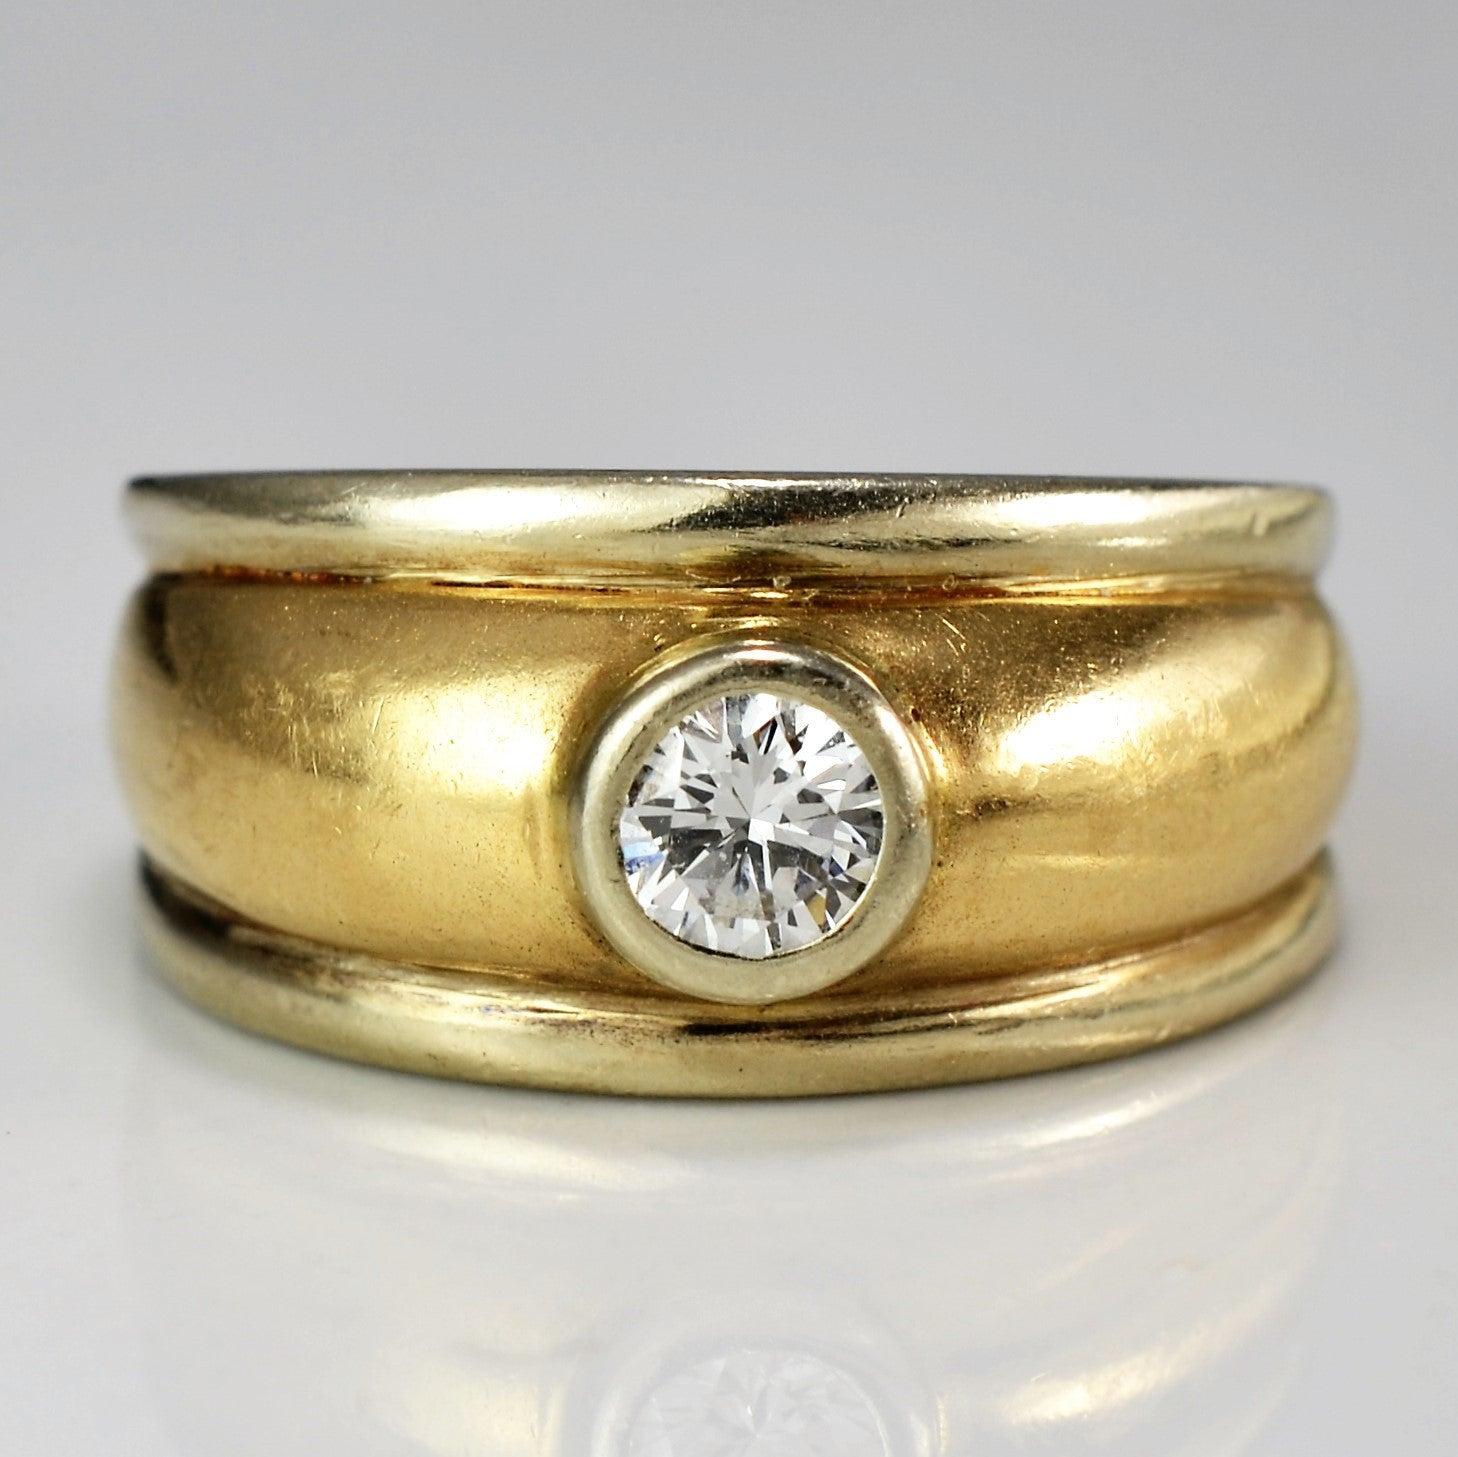 Vintage Wide Band Engagement Ring | 0.30 ct, SZ 5.25 |